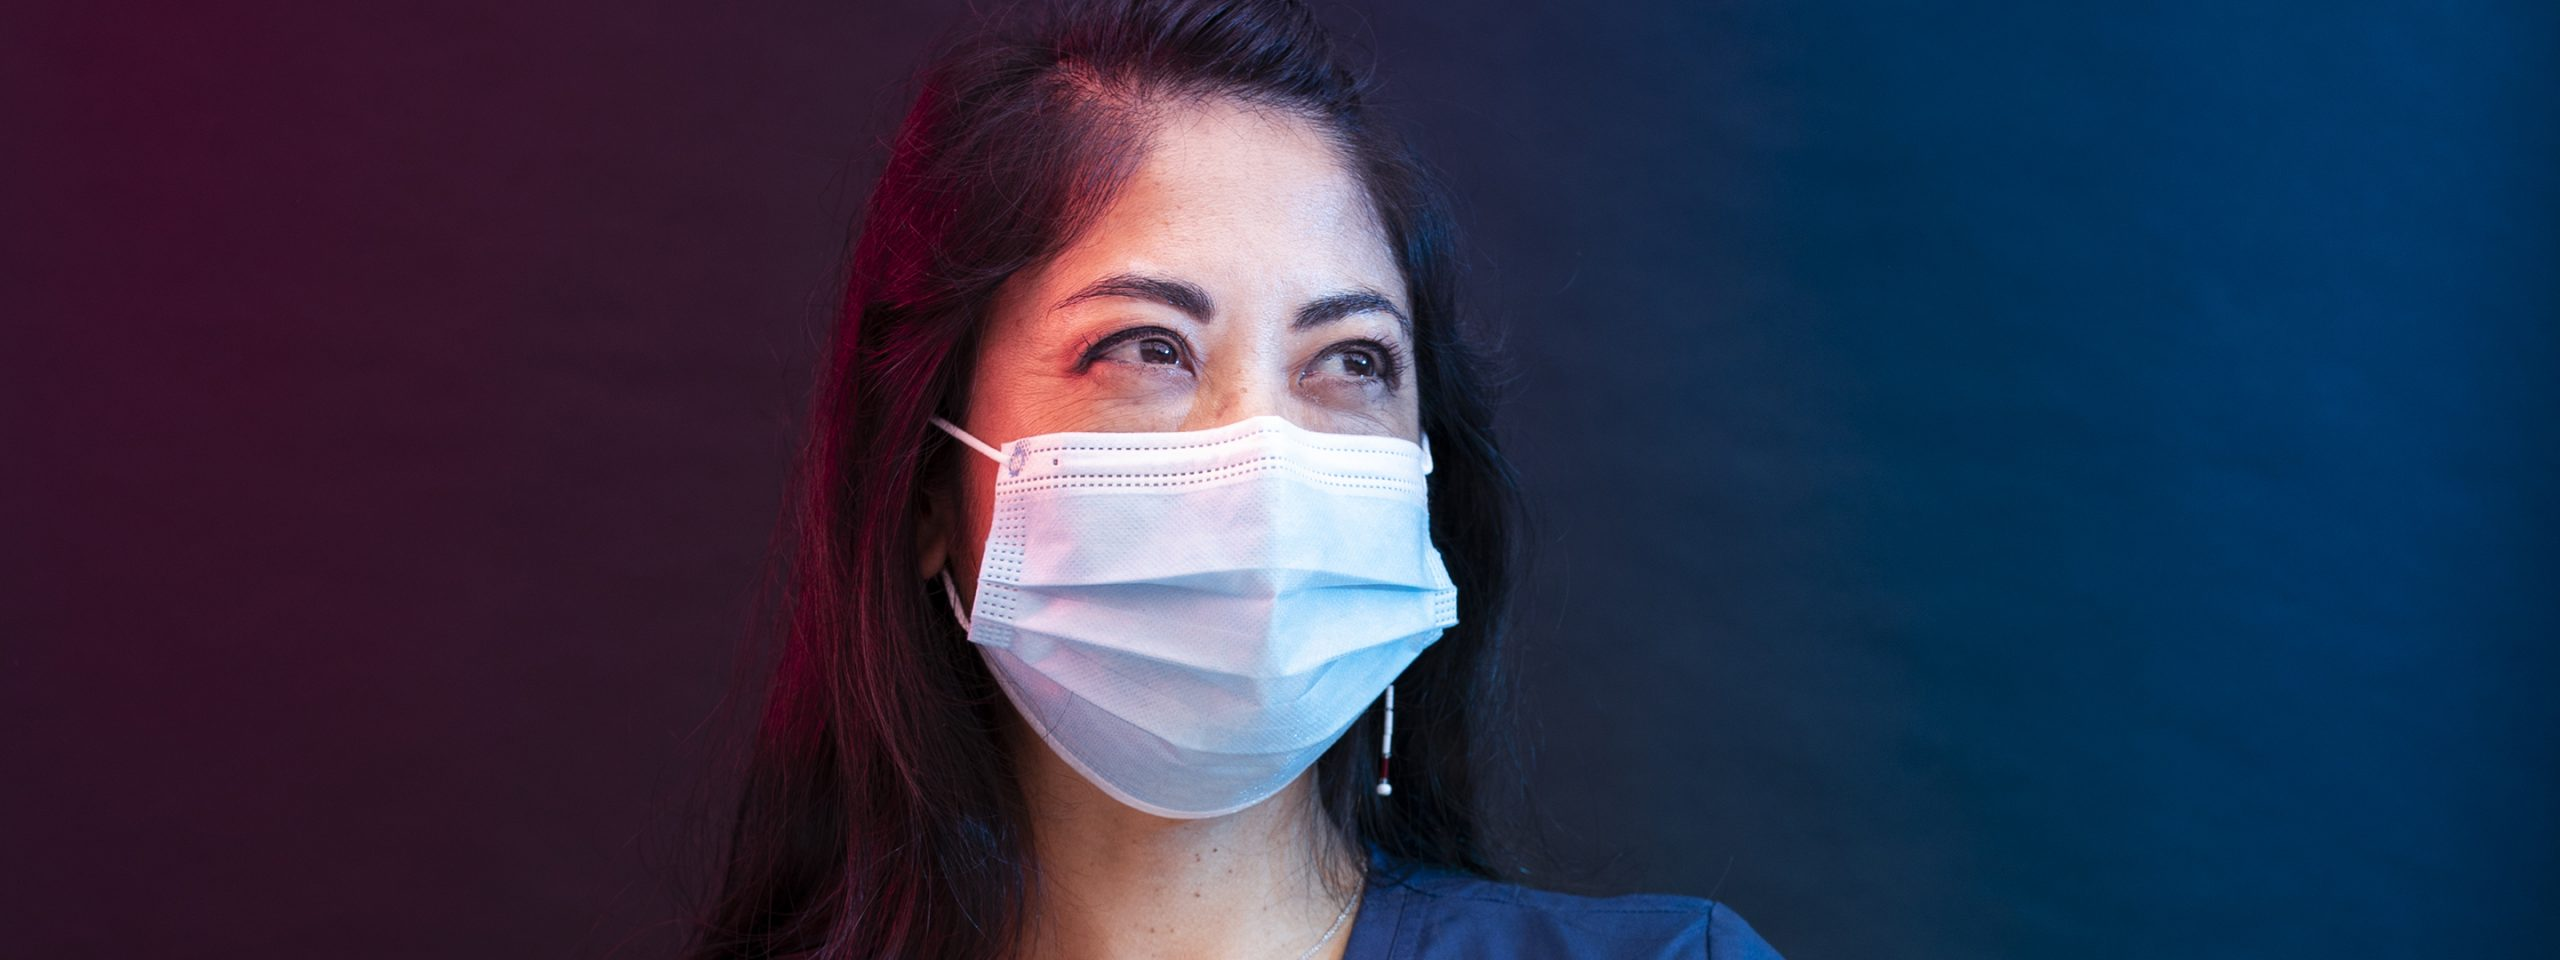 Dr. Chu in surgical mask